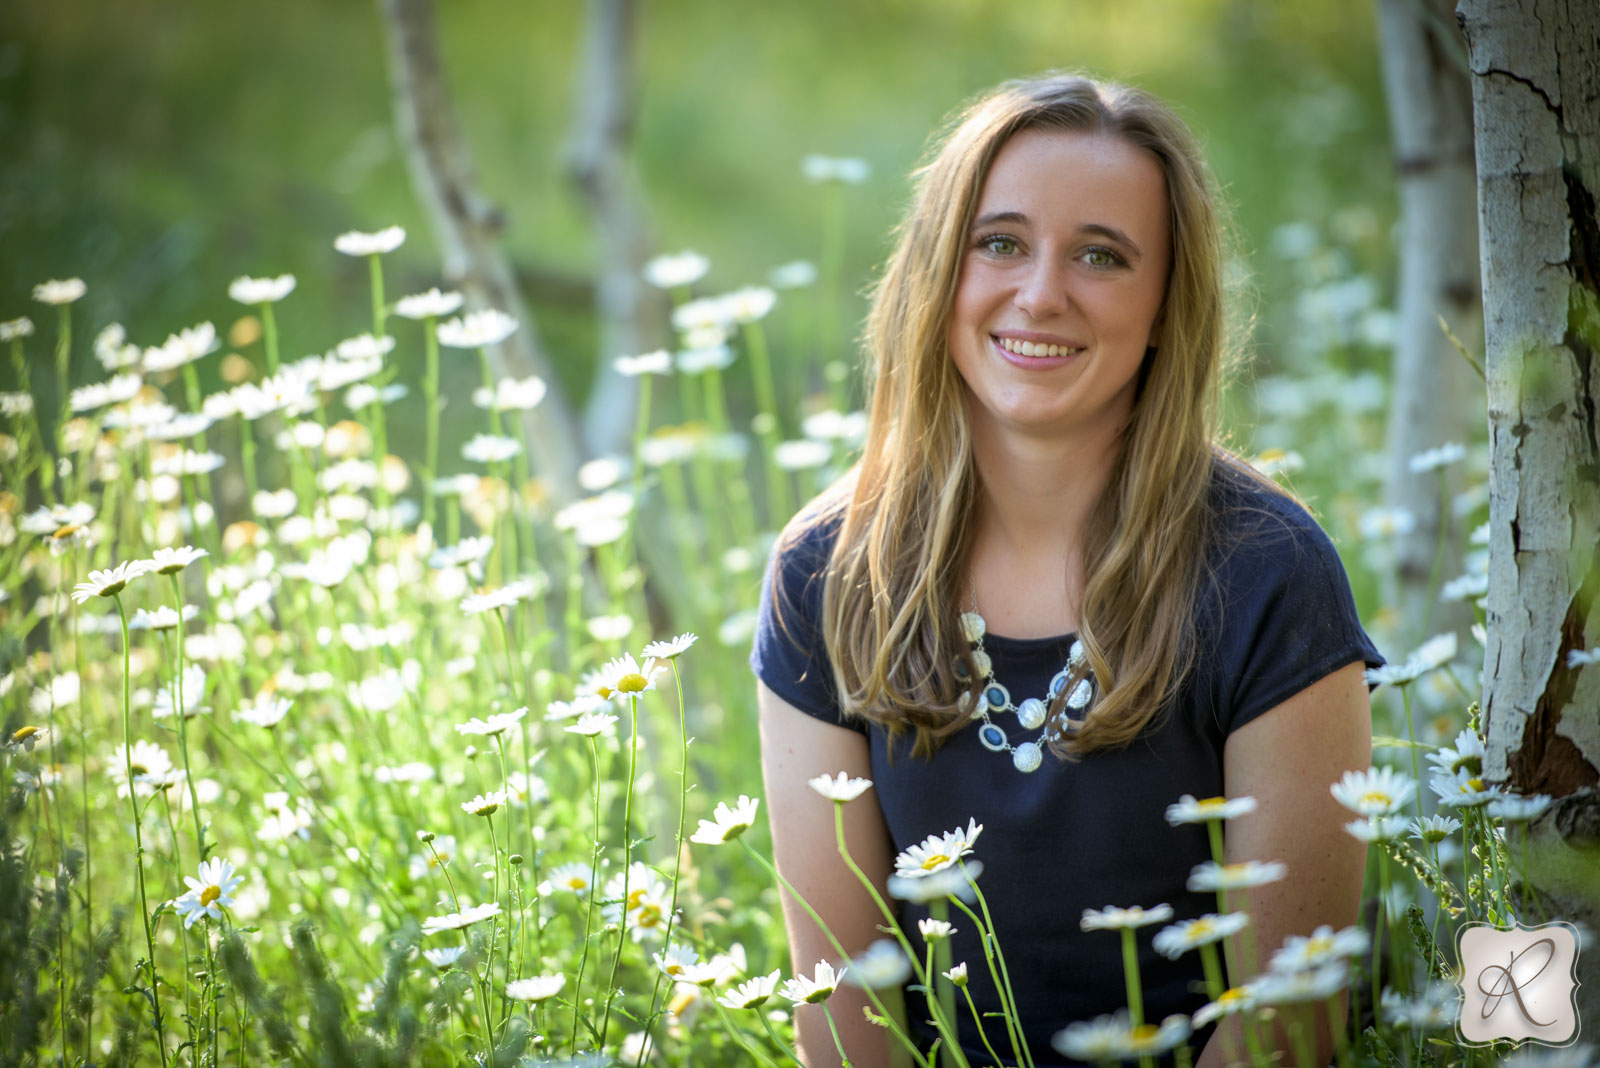 Senior pictures for Durango Colorado - field of flowers